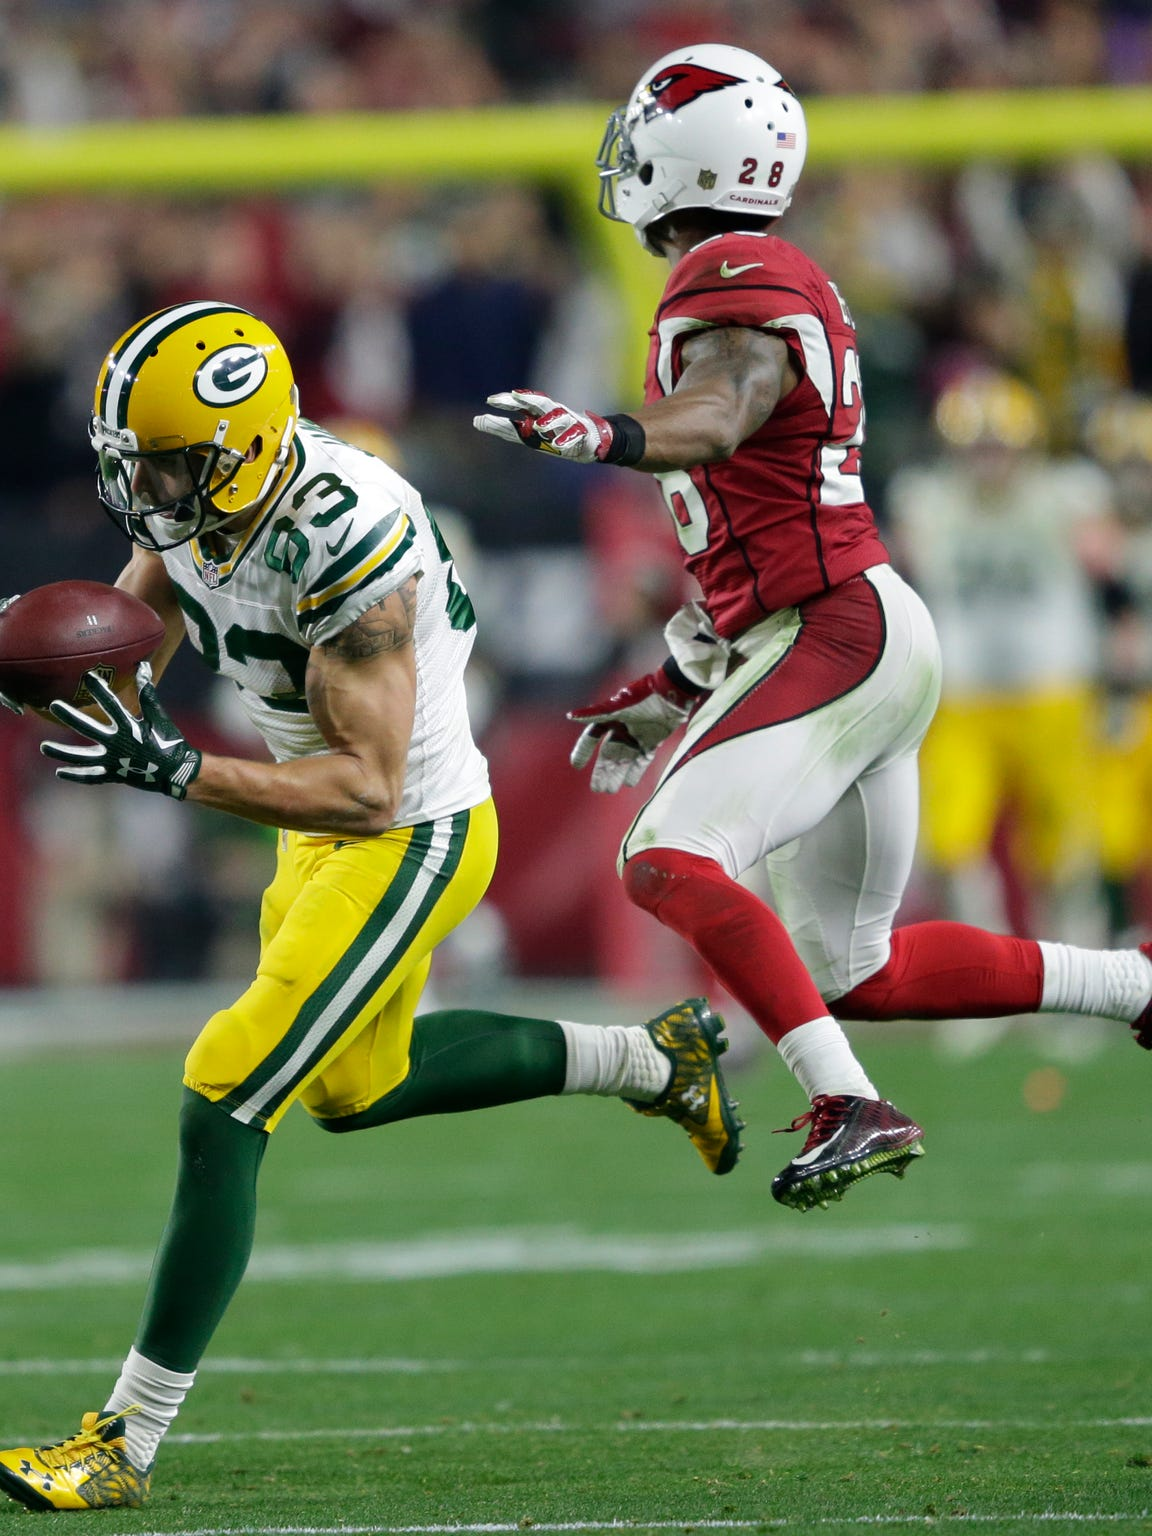 Green Bay Packers receiver Jeff Janis pulls down a reception on fourth and twenty late in the fourth quarter against Arizona Cardinals cornerback Justin Bethel.